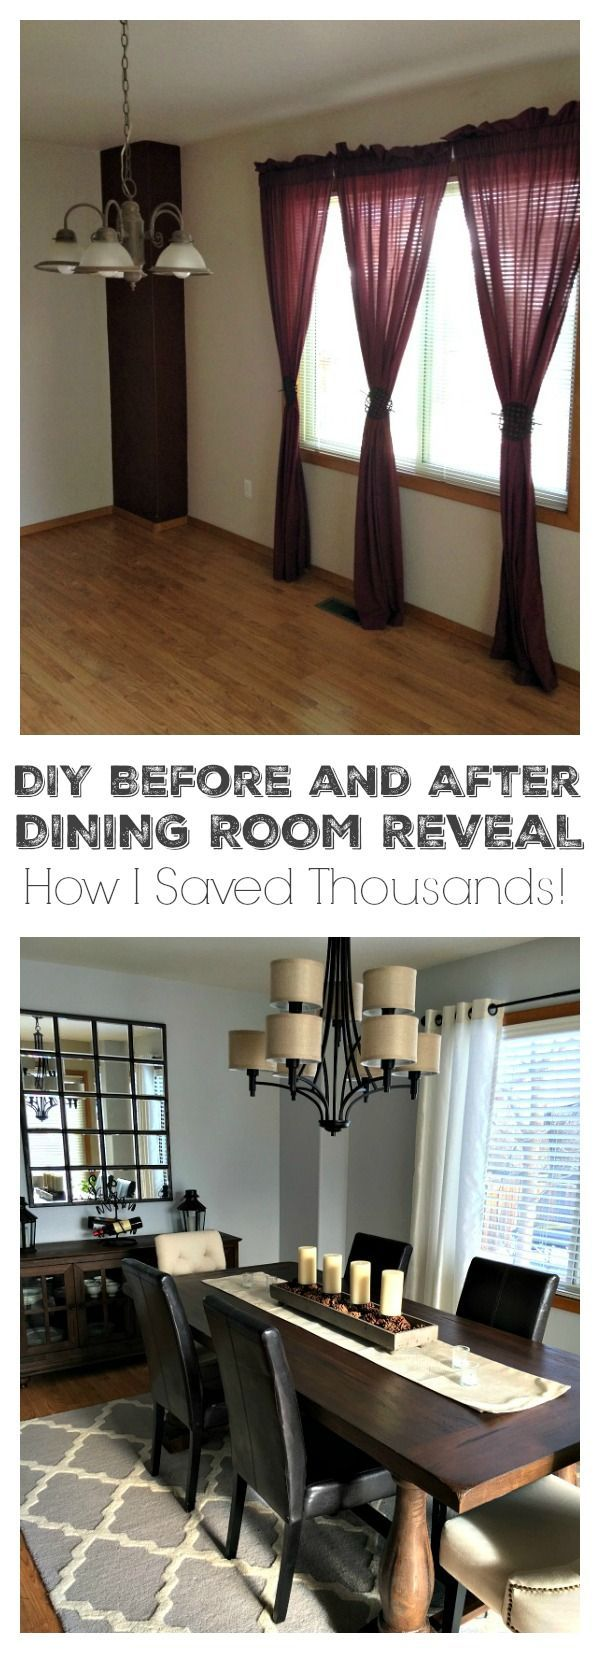 Home Decorating DIY Projects: Remodeling a dining room ...